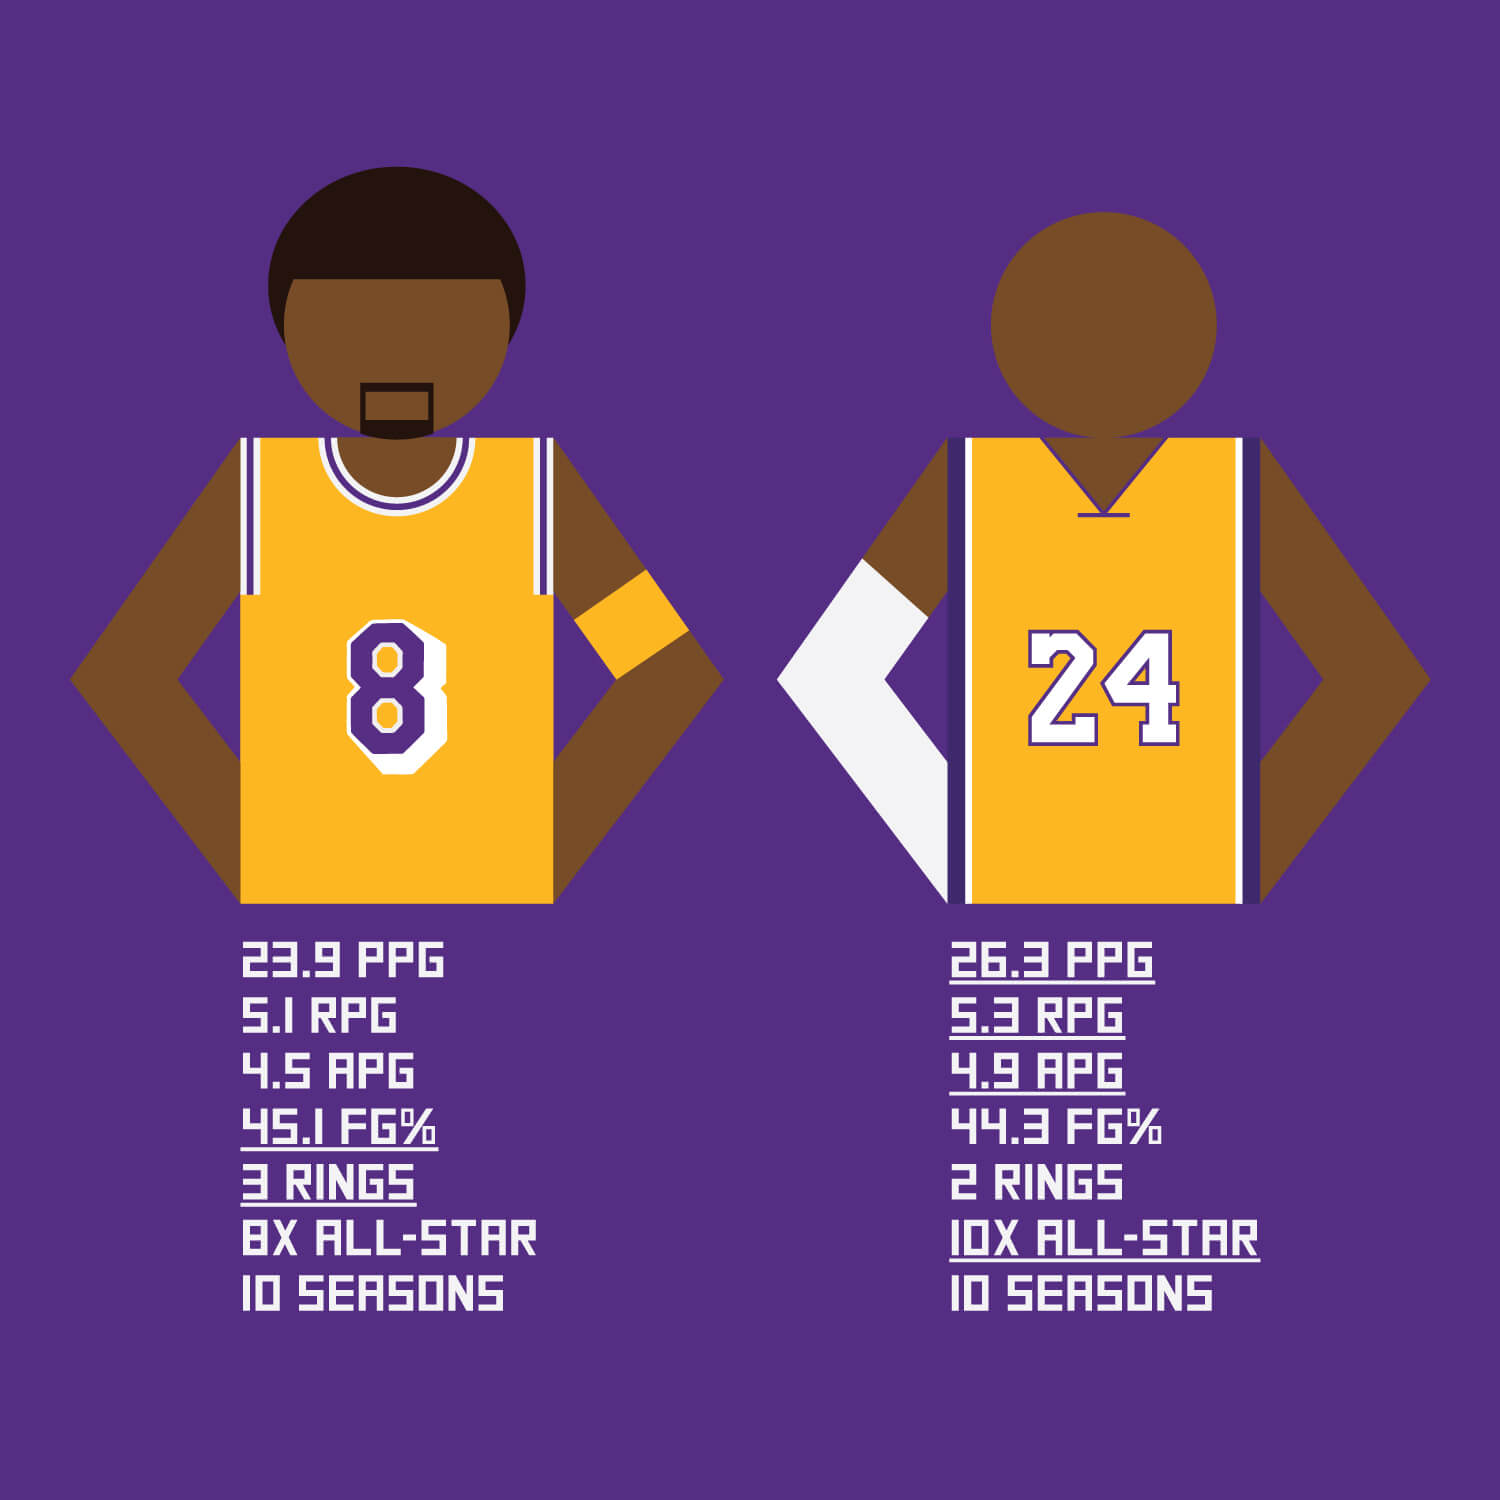 What are Kobe Bryant's career stats?